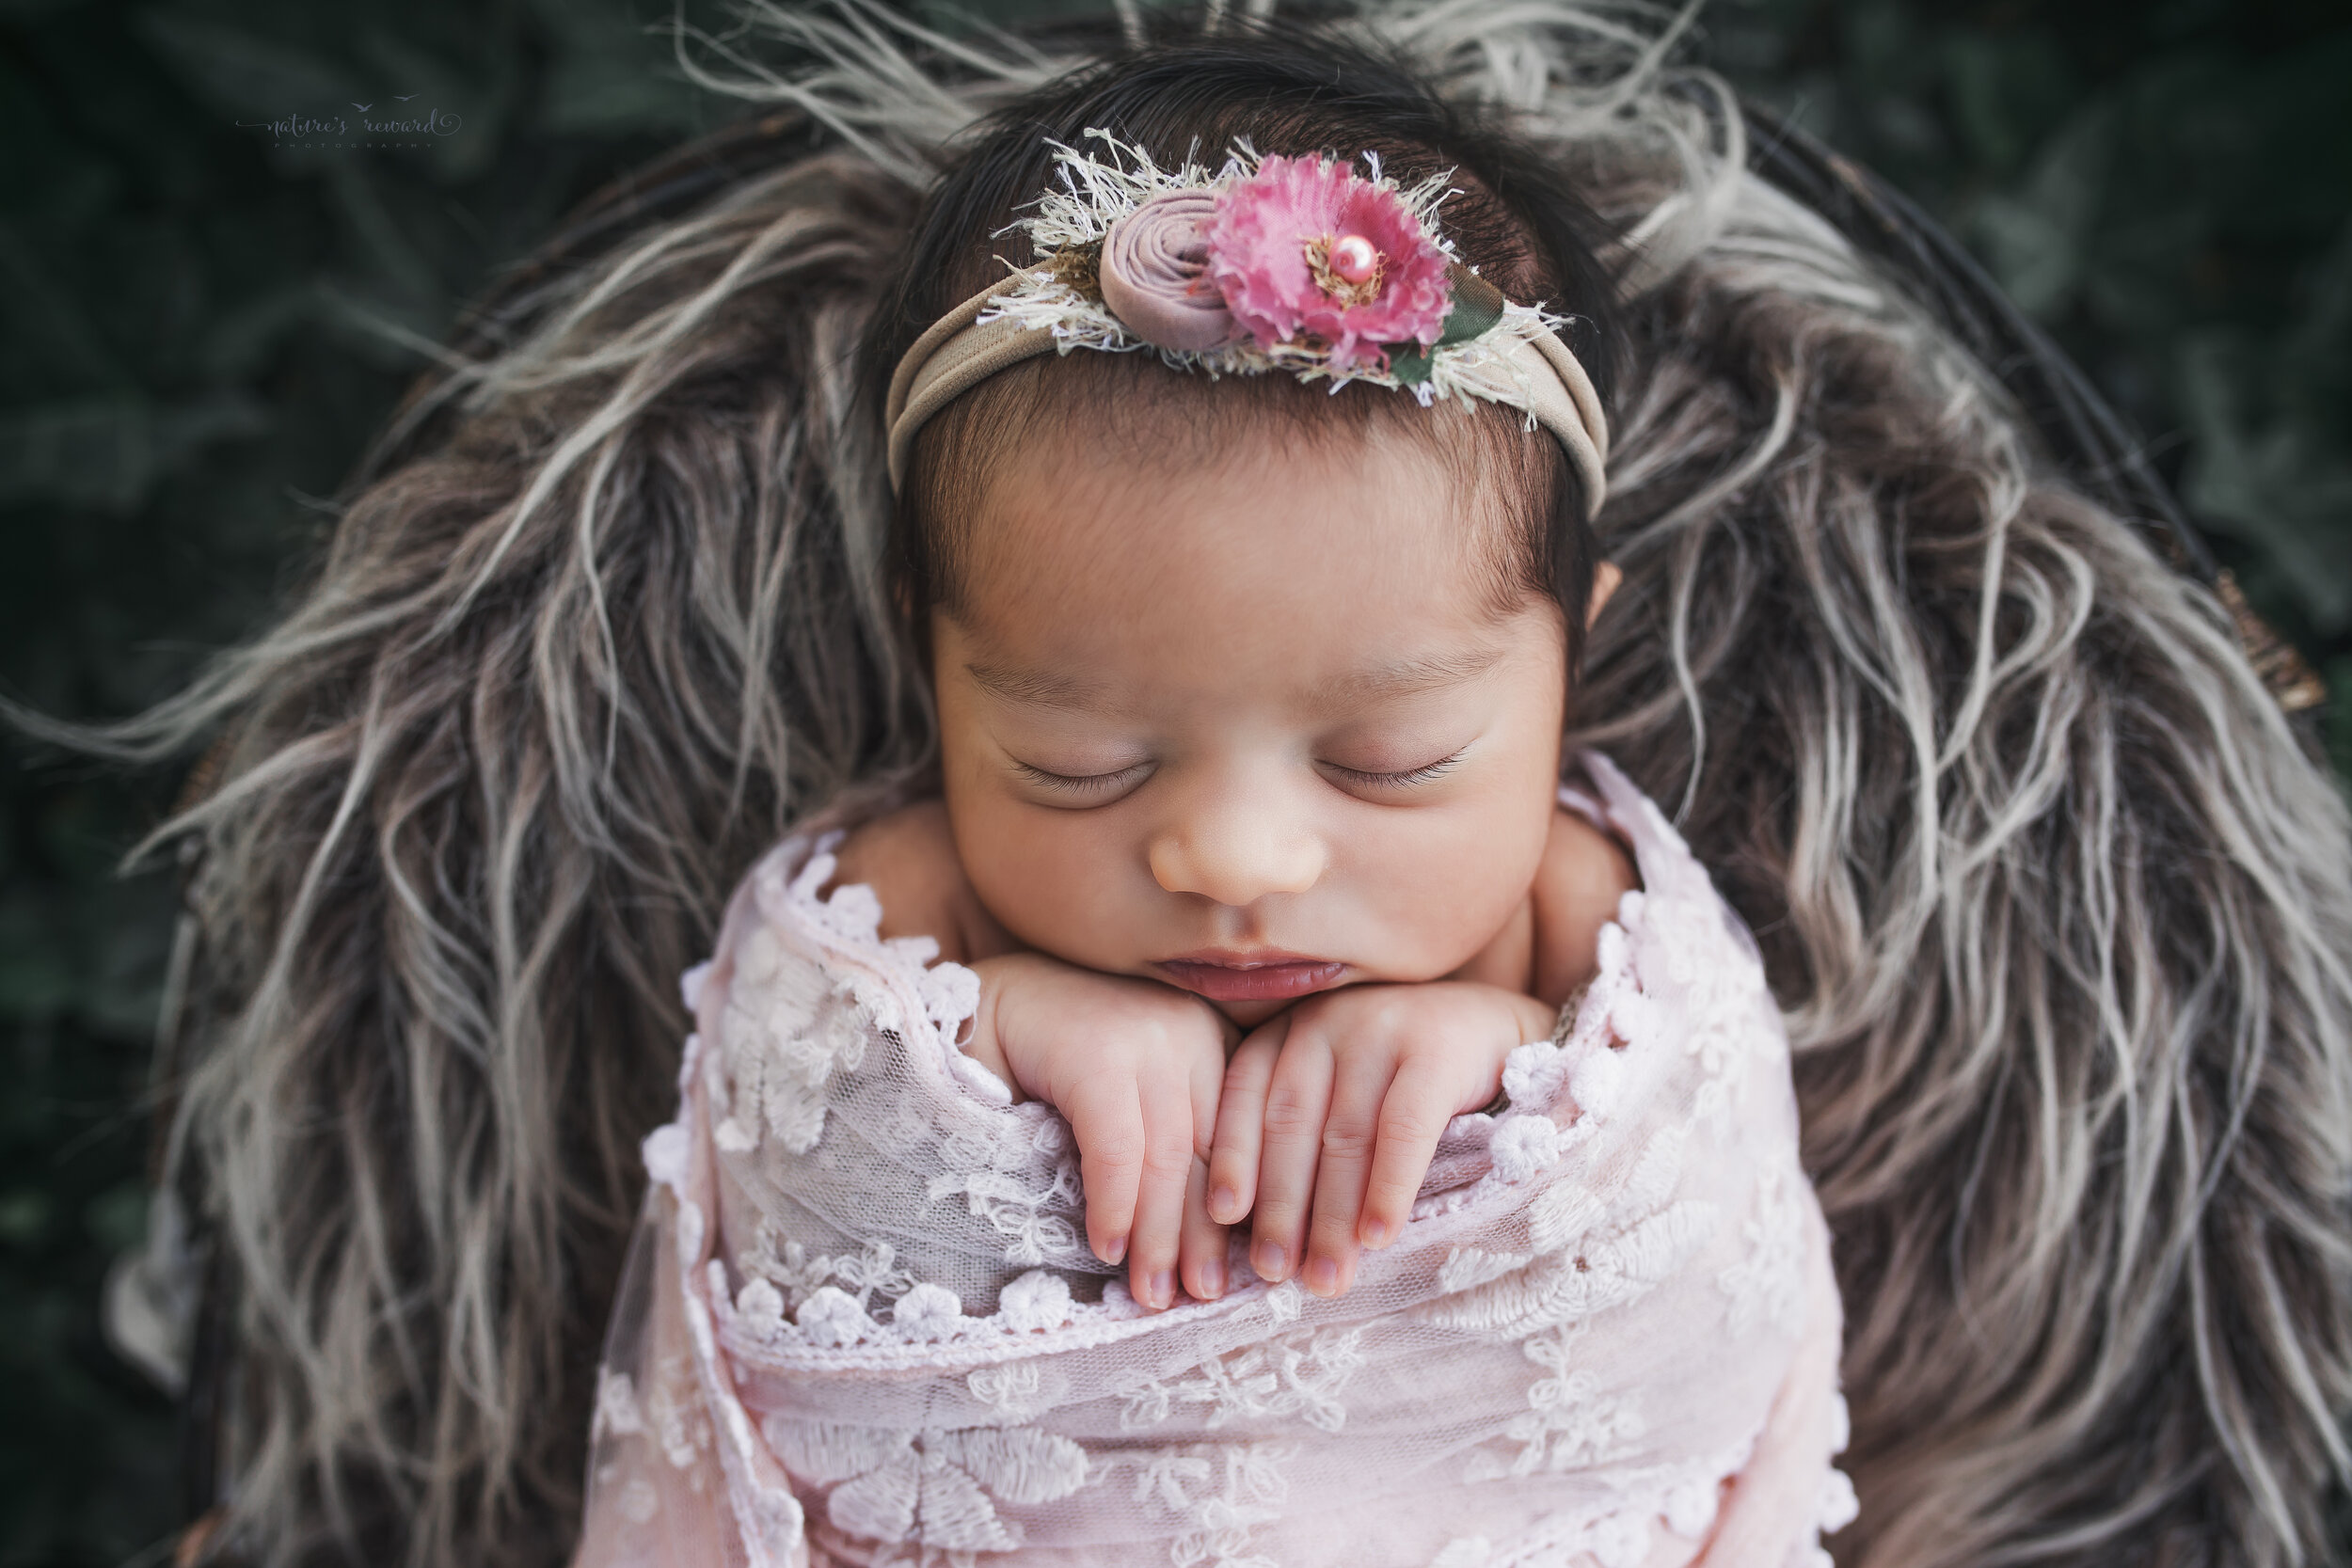 Newborn baby girl wrapped in pink lace, a newborn portrait by Nature's Reward Photography